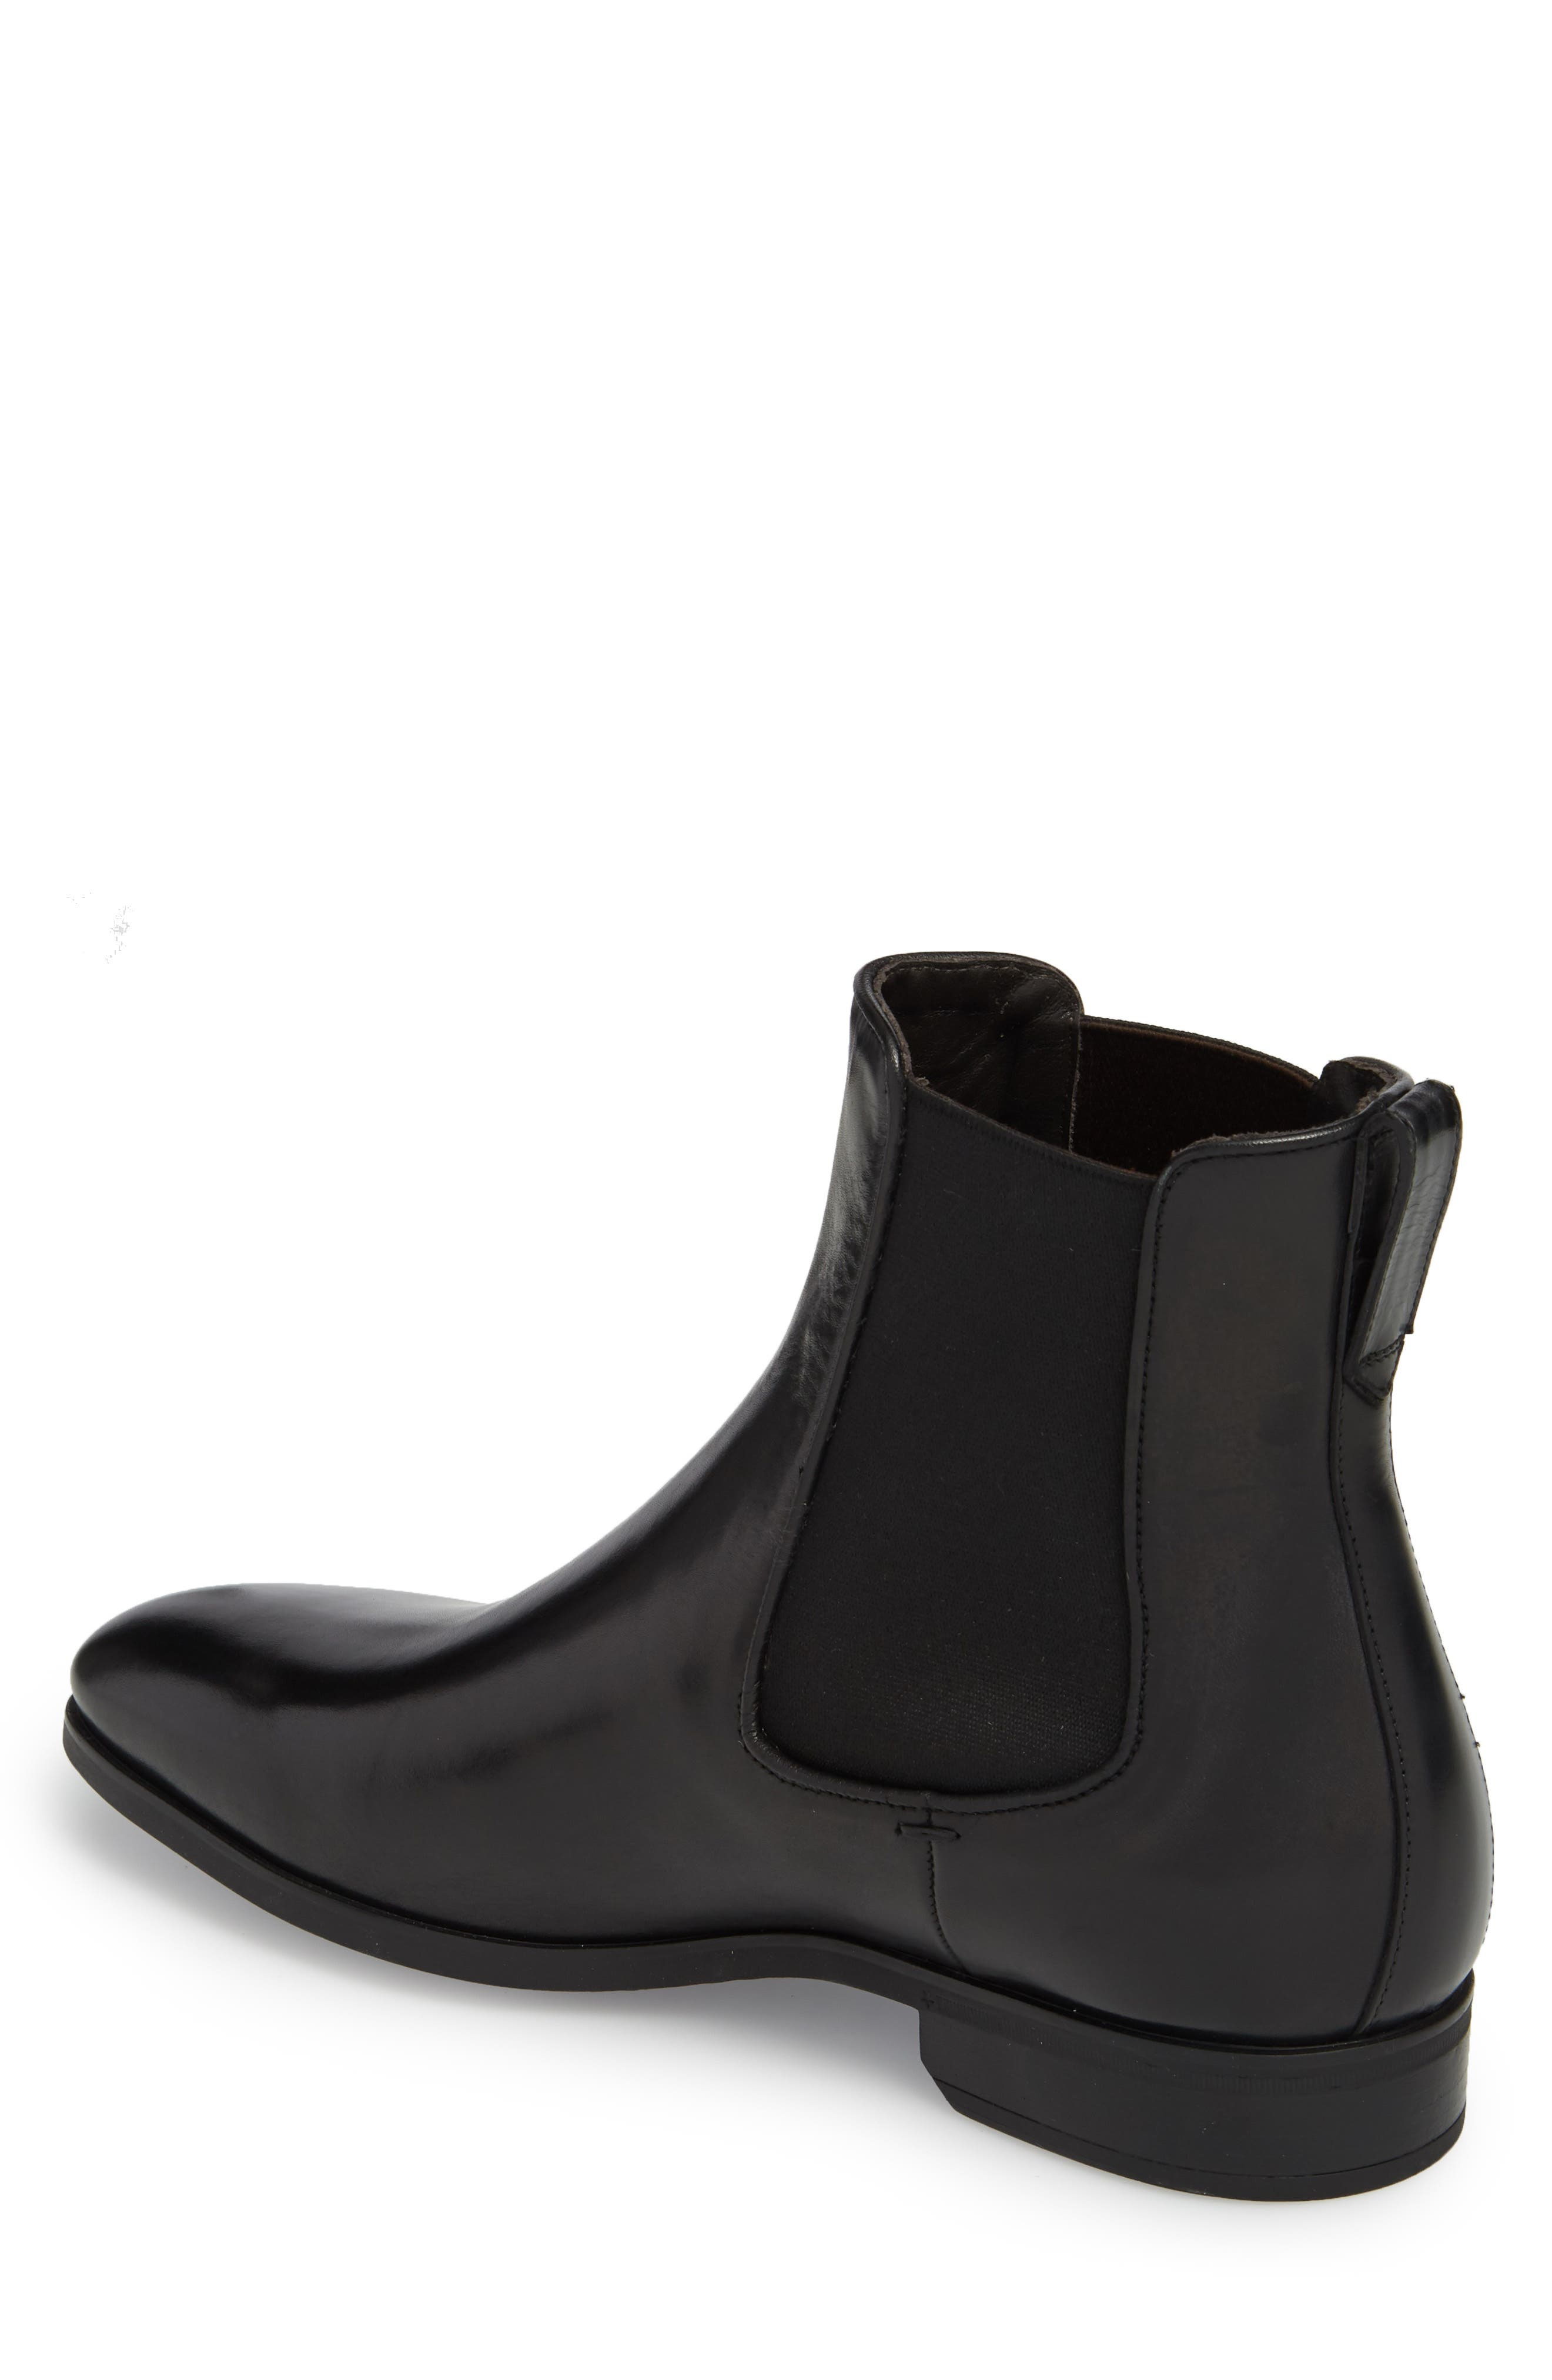 TO BOOT NEW YORK, Aldrich Mid Chelsea Boot, Alternate thumbnail 2, color, BLACK/ BLACK LEATHER